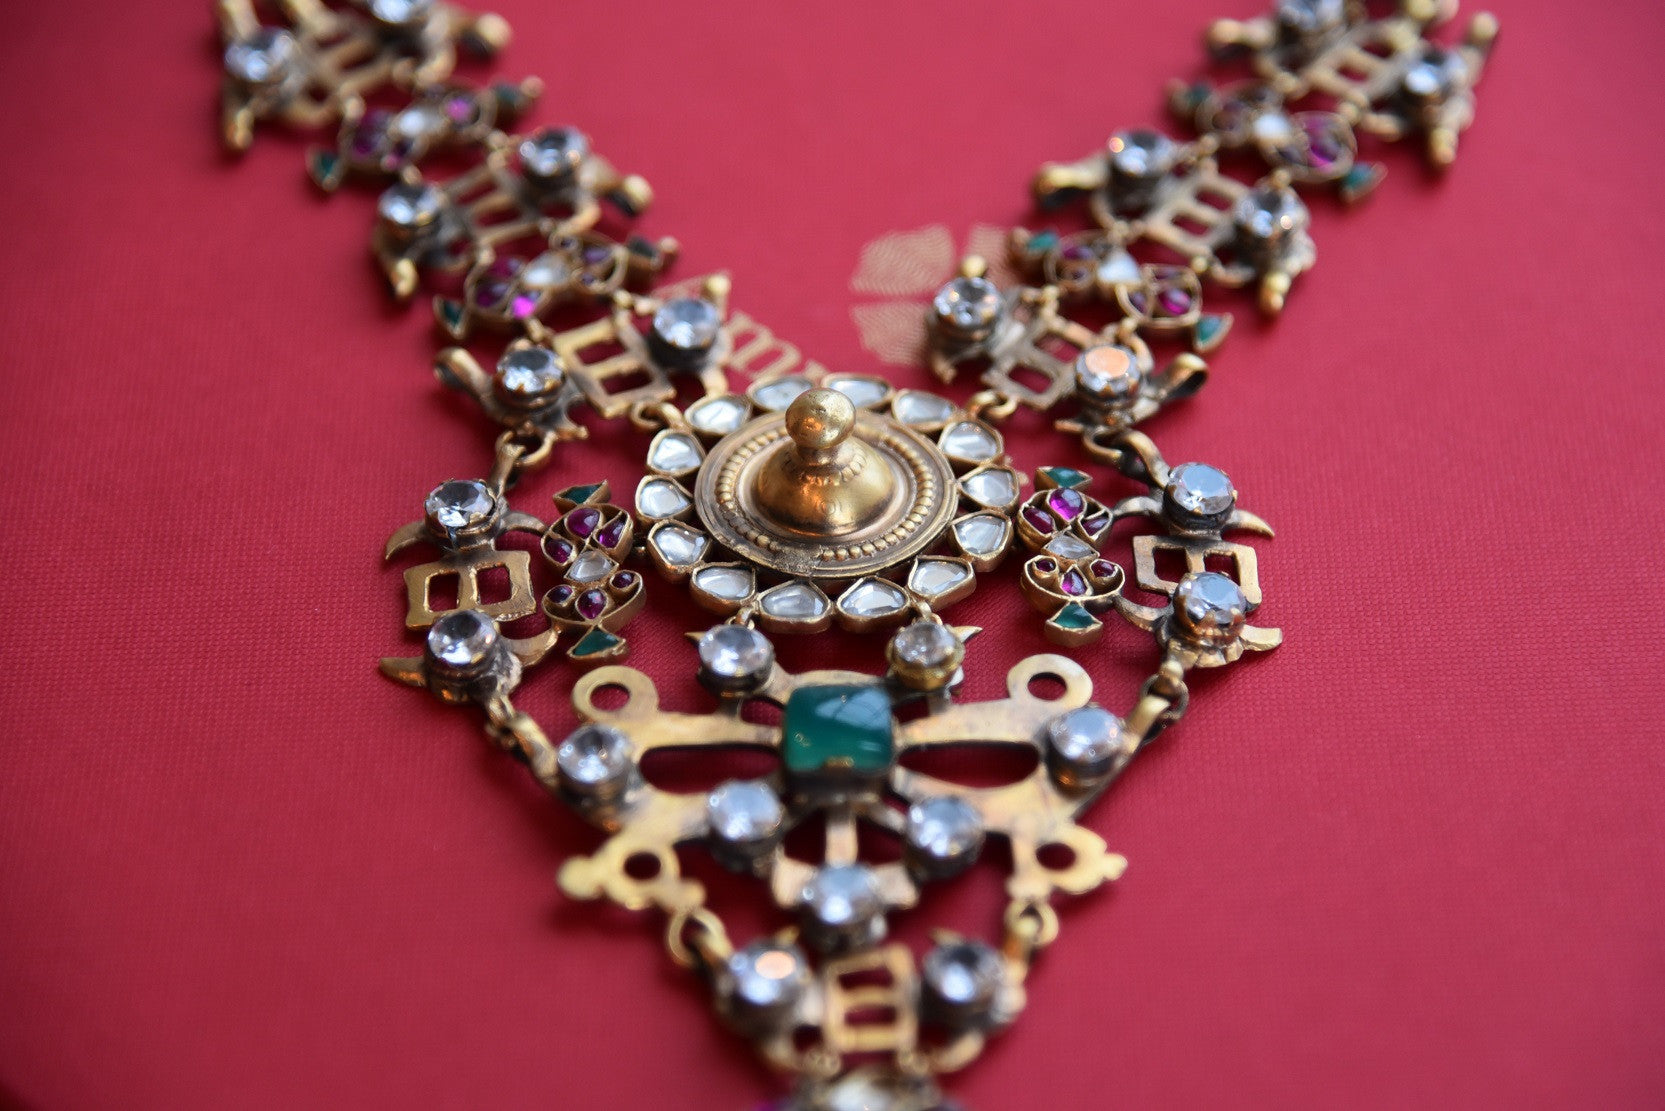 20B014, The traditional Indian amrapali fashion jewelry necklace from Pure Elegance can be bought online or from our store in USA. Perfect for any wedding and reception. Close up.